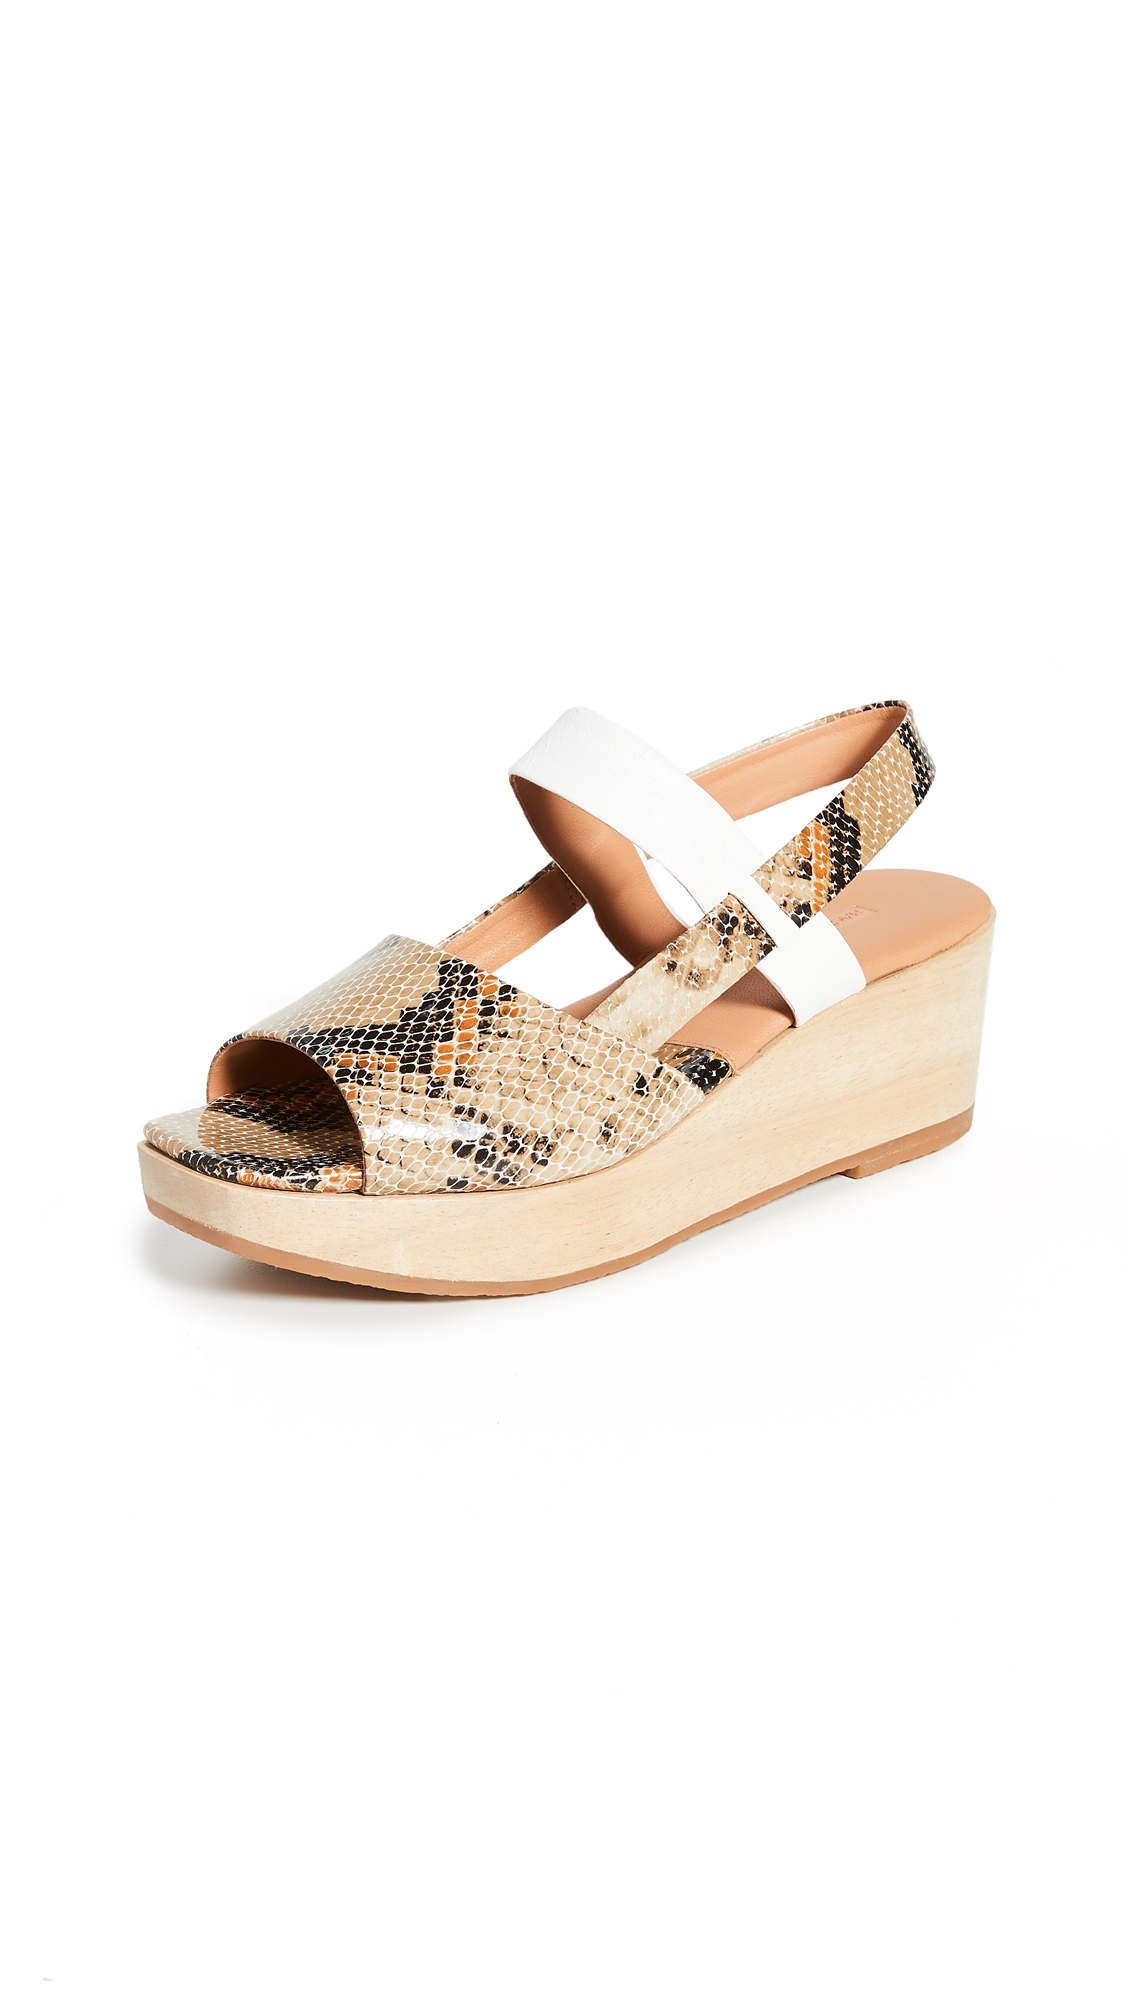 Rachel Comey New Kinta Clogs – 50% Off Sale